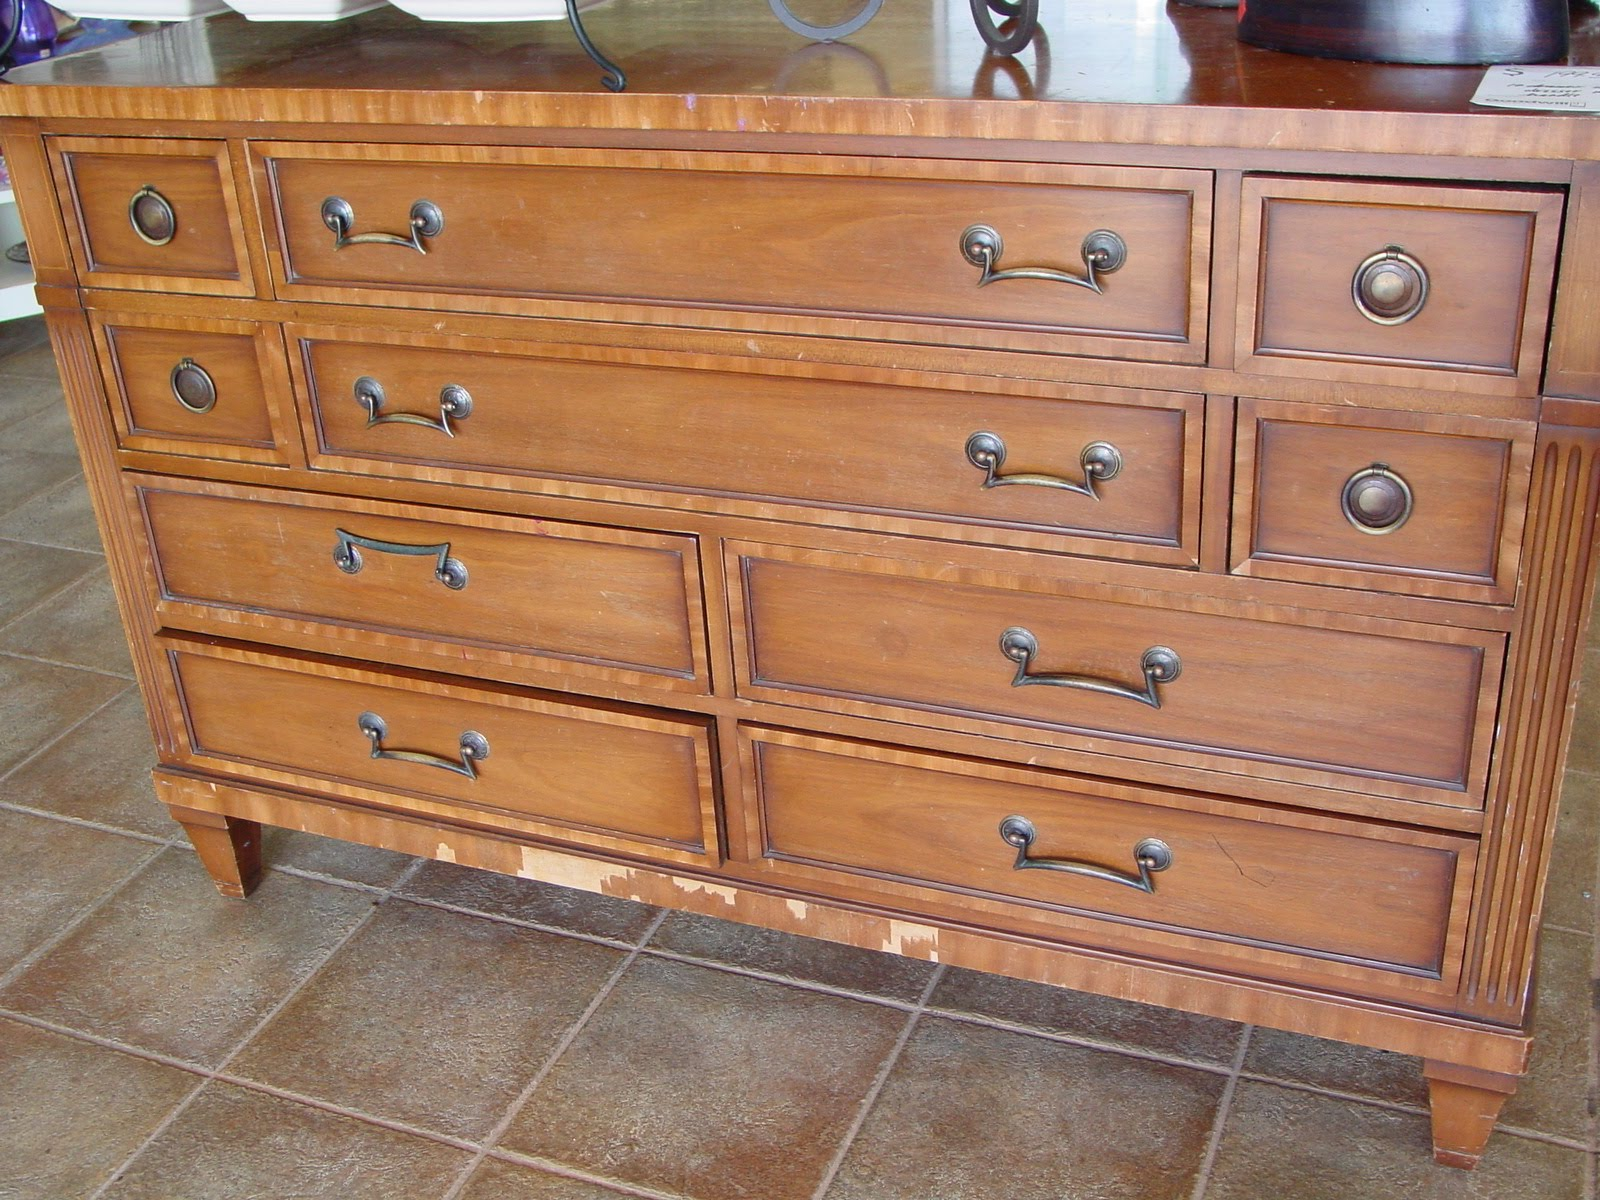 Don T Get Me Wrong This Dresser Is A Beautiful Piece It Has Tons Of Potential But 200 On Something Goodwill Got As Donation